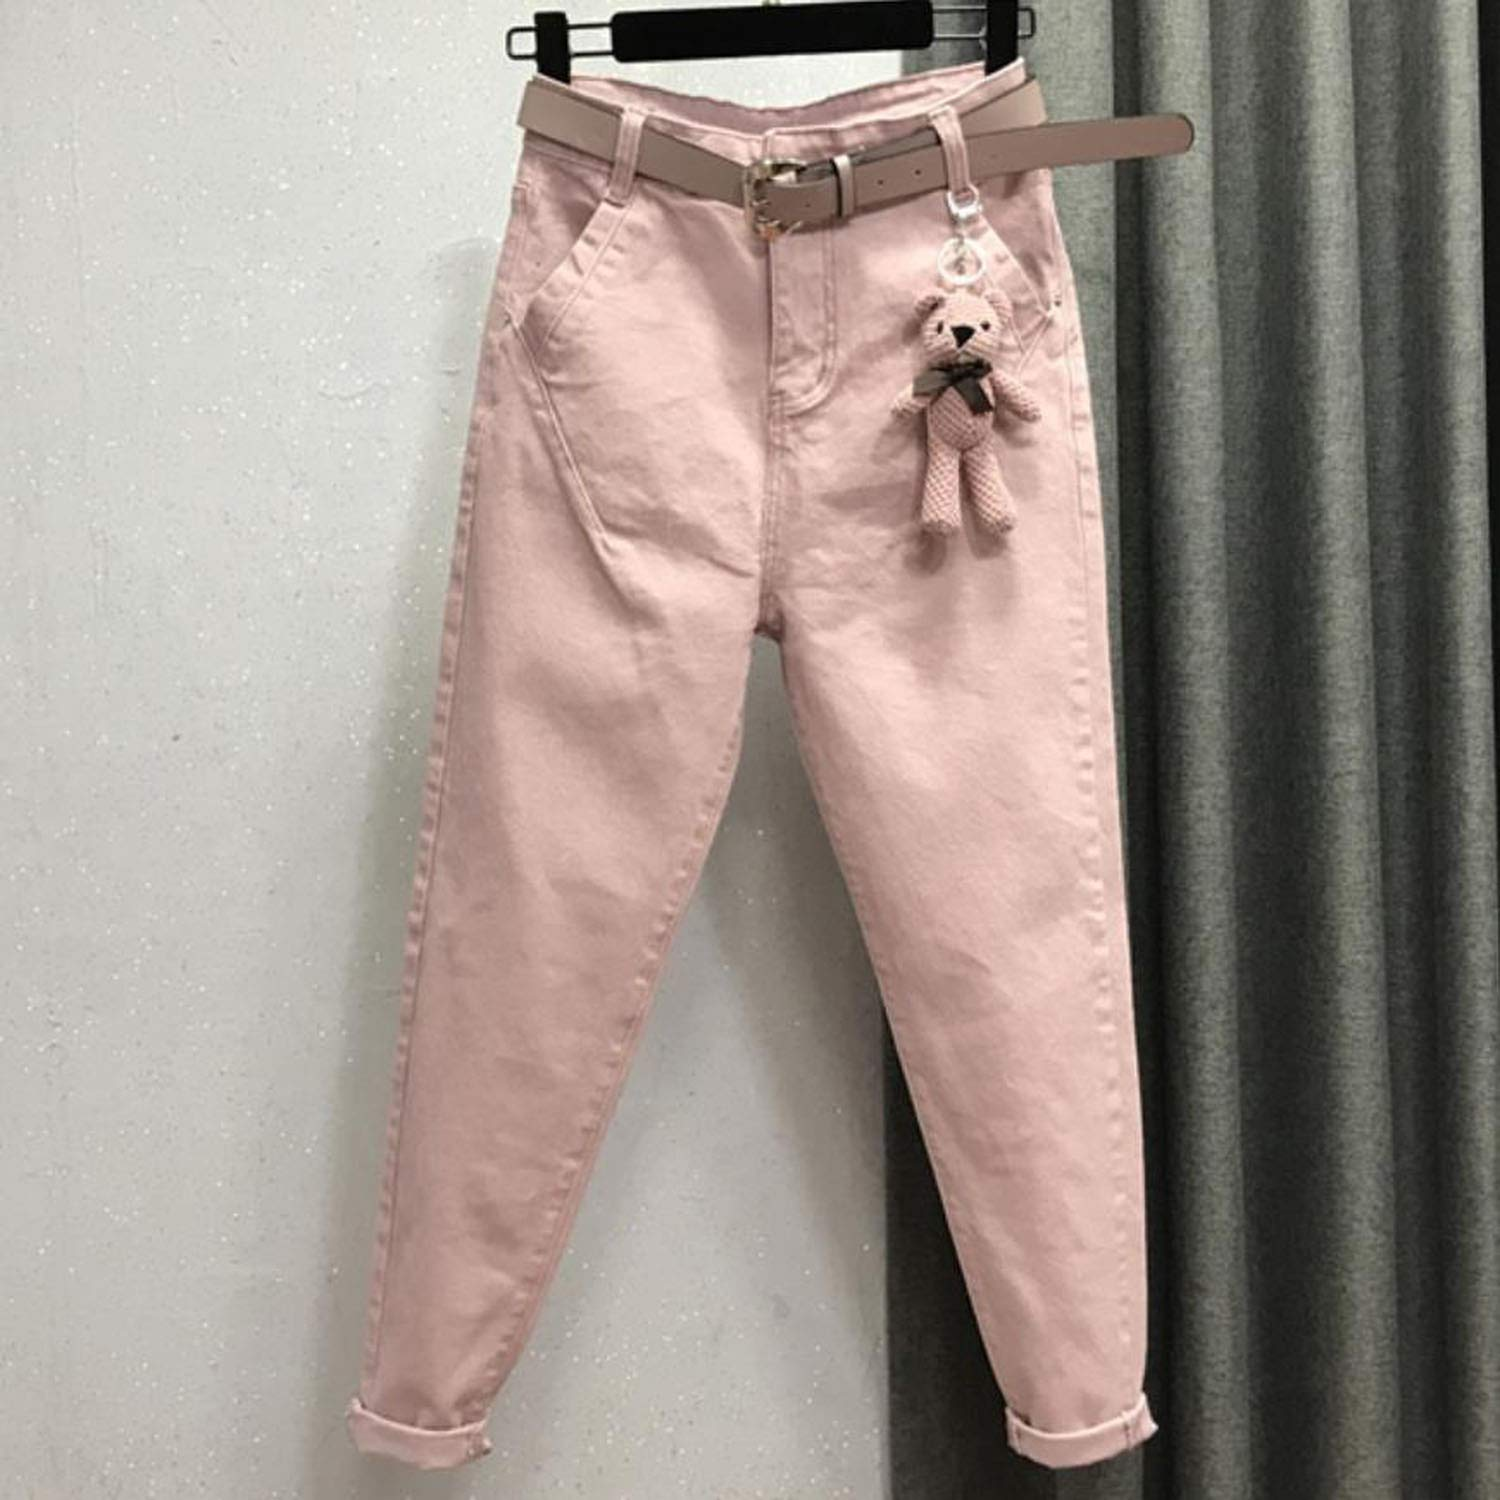 Dreamedge 26-32!New Spring feet Casual Harem Loose high Waist Pink Jeans,Pink,31